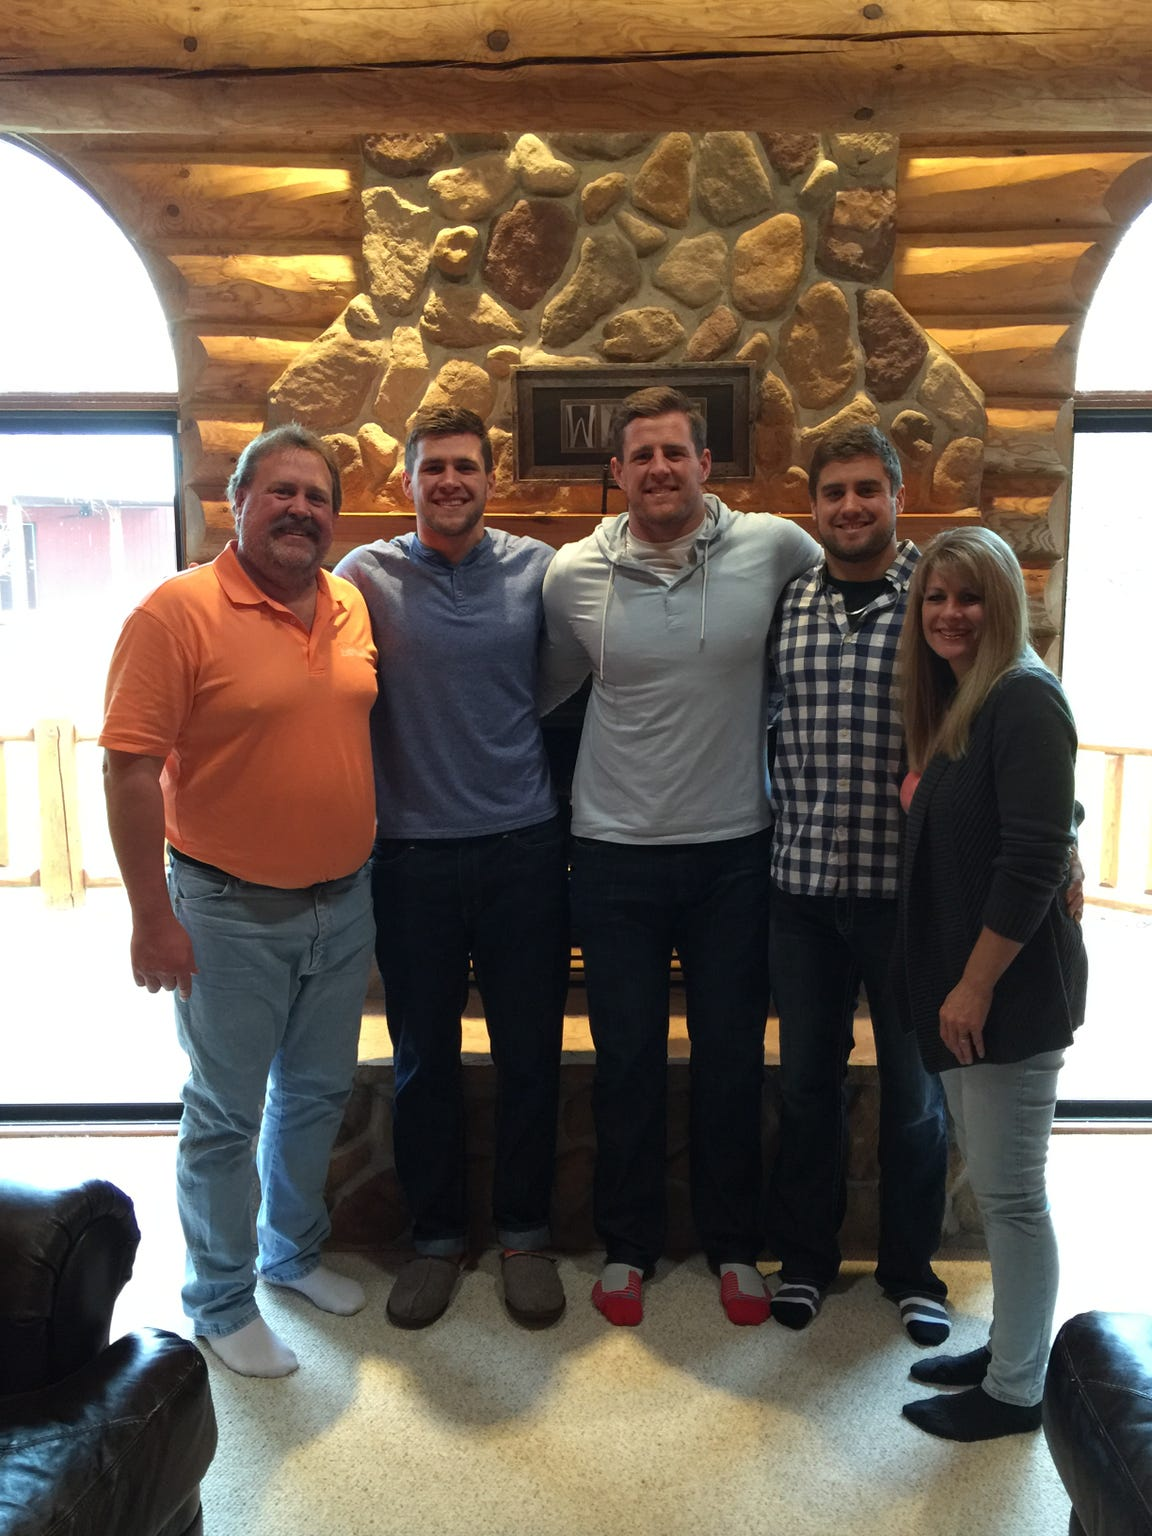 The Watt Family (from left) John, TJ, JJ, Derek and